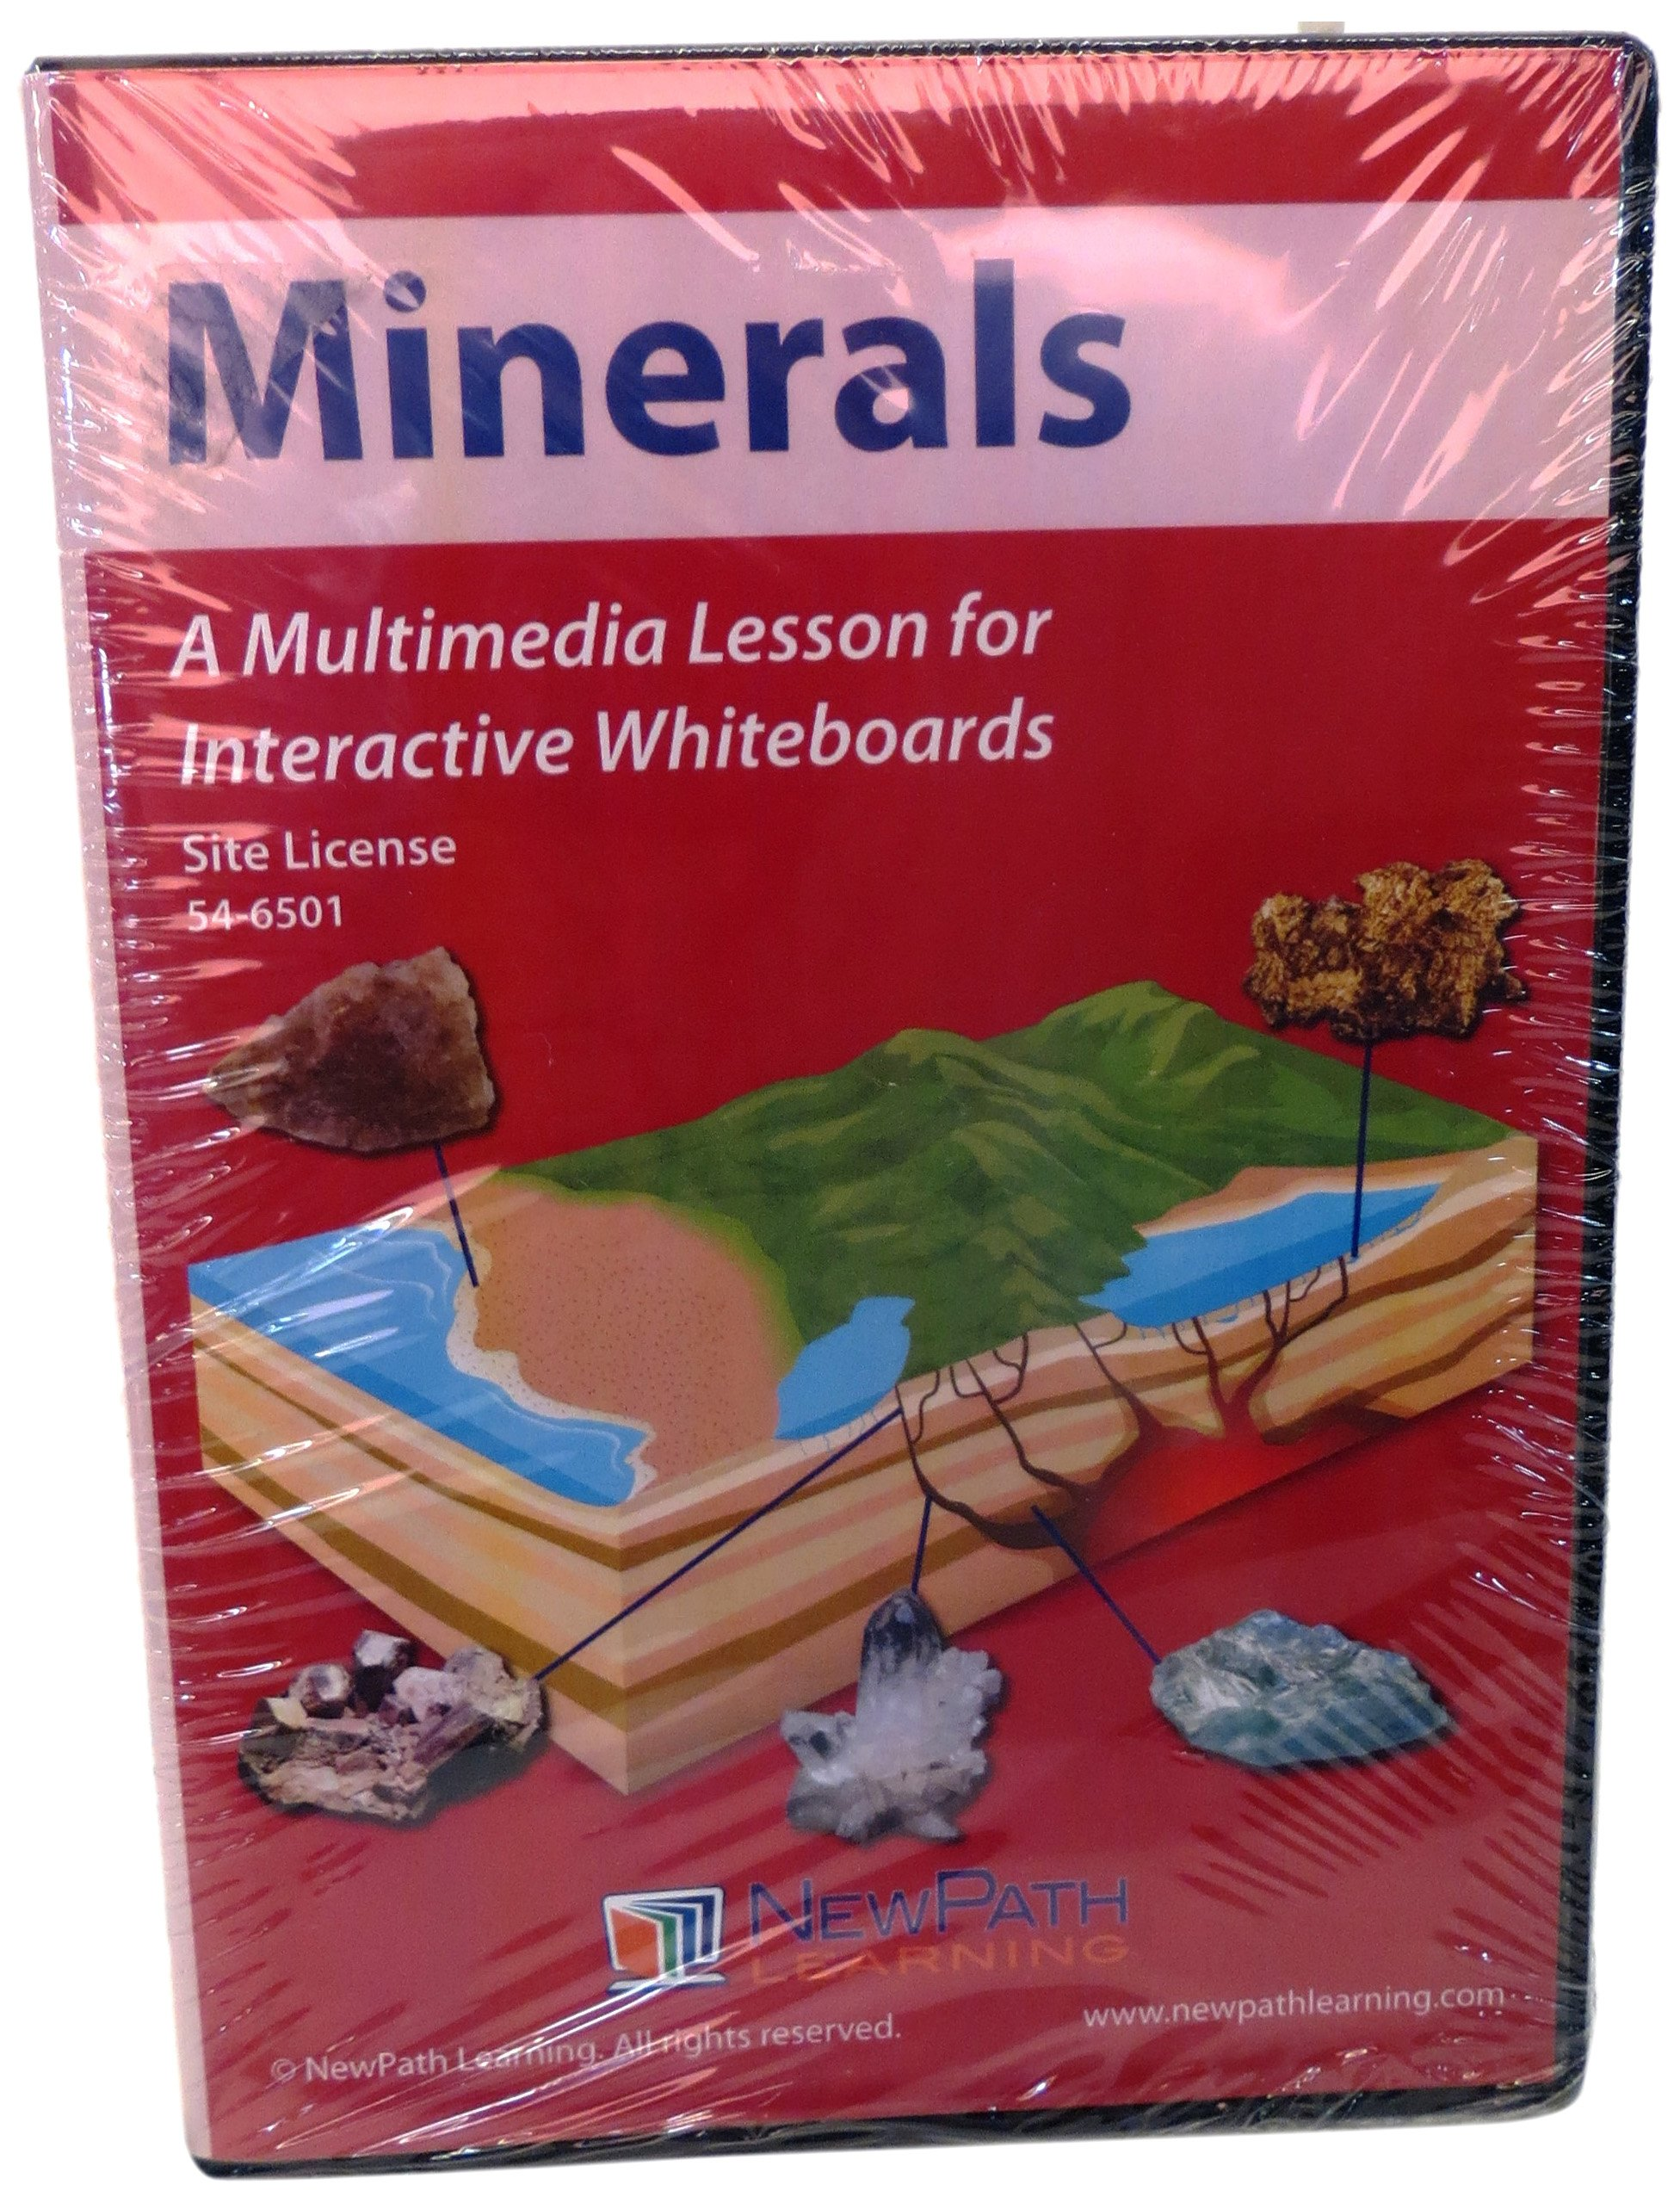 Site License CD-ROM: Multimedia Lesson for Interactive Whiteboards, Minerals, (78673)